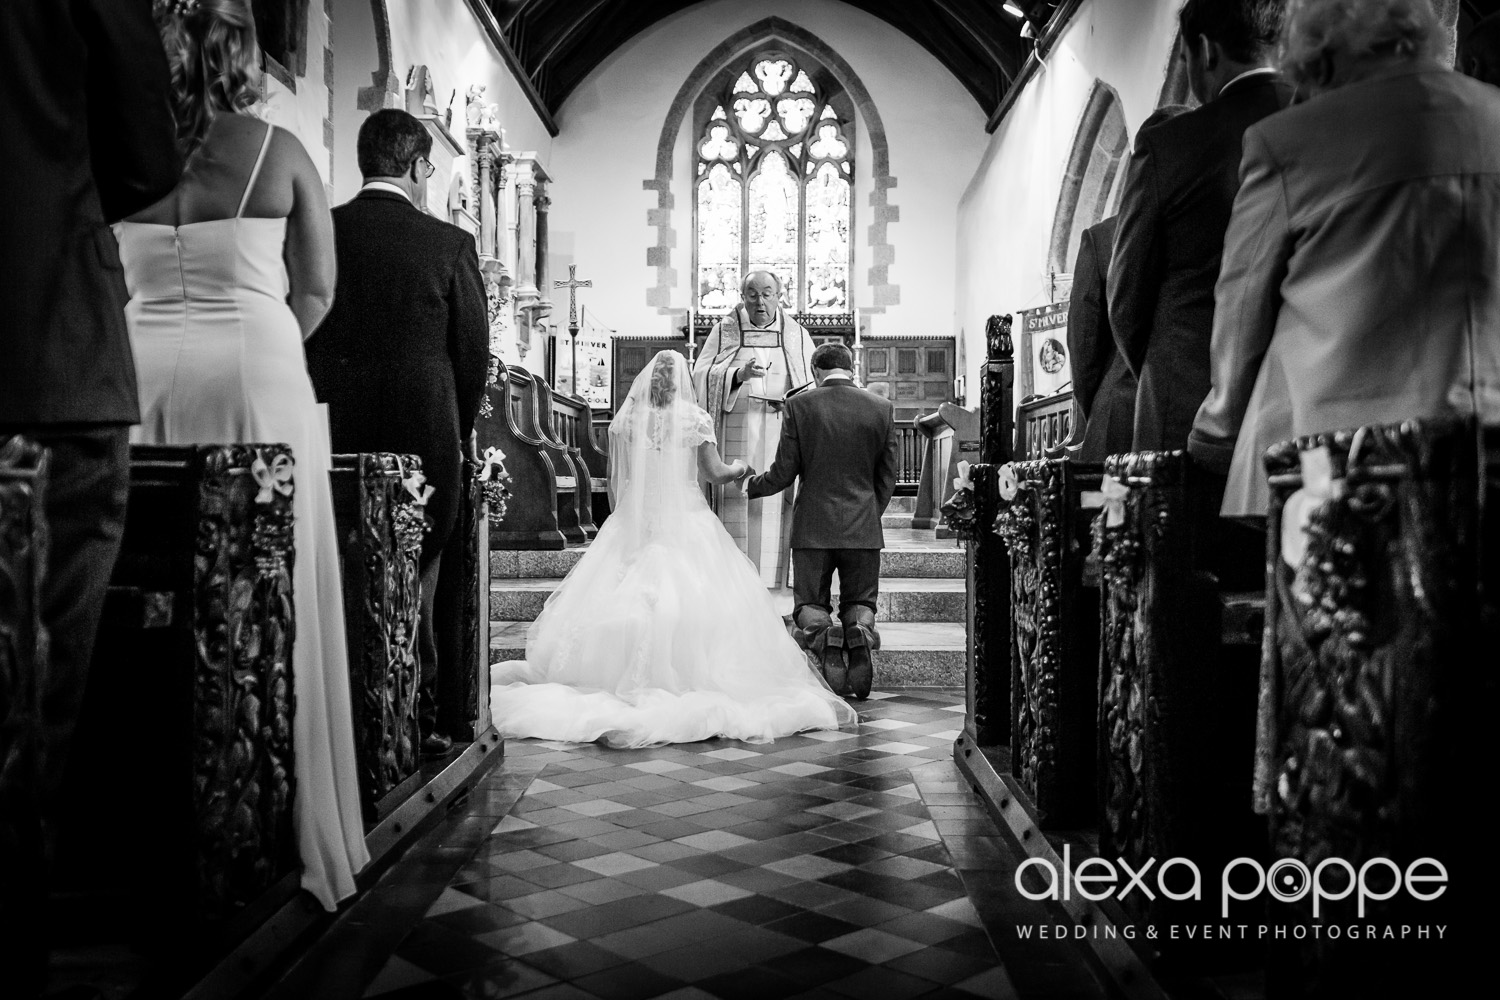 wedding_rock_cornwall-35.jpg